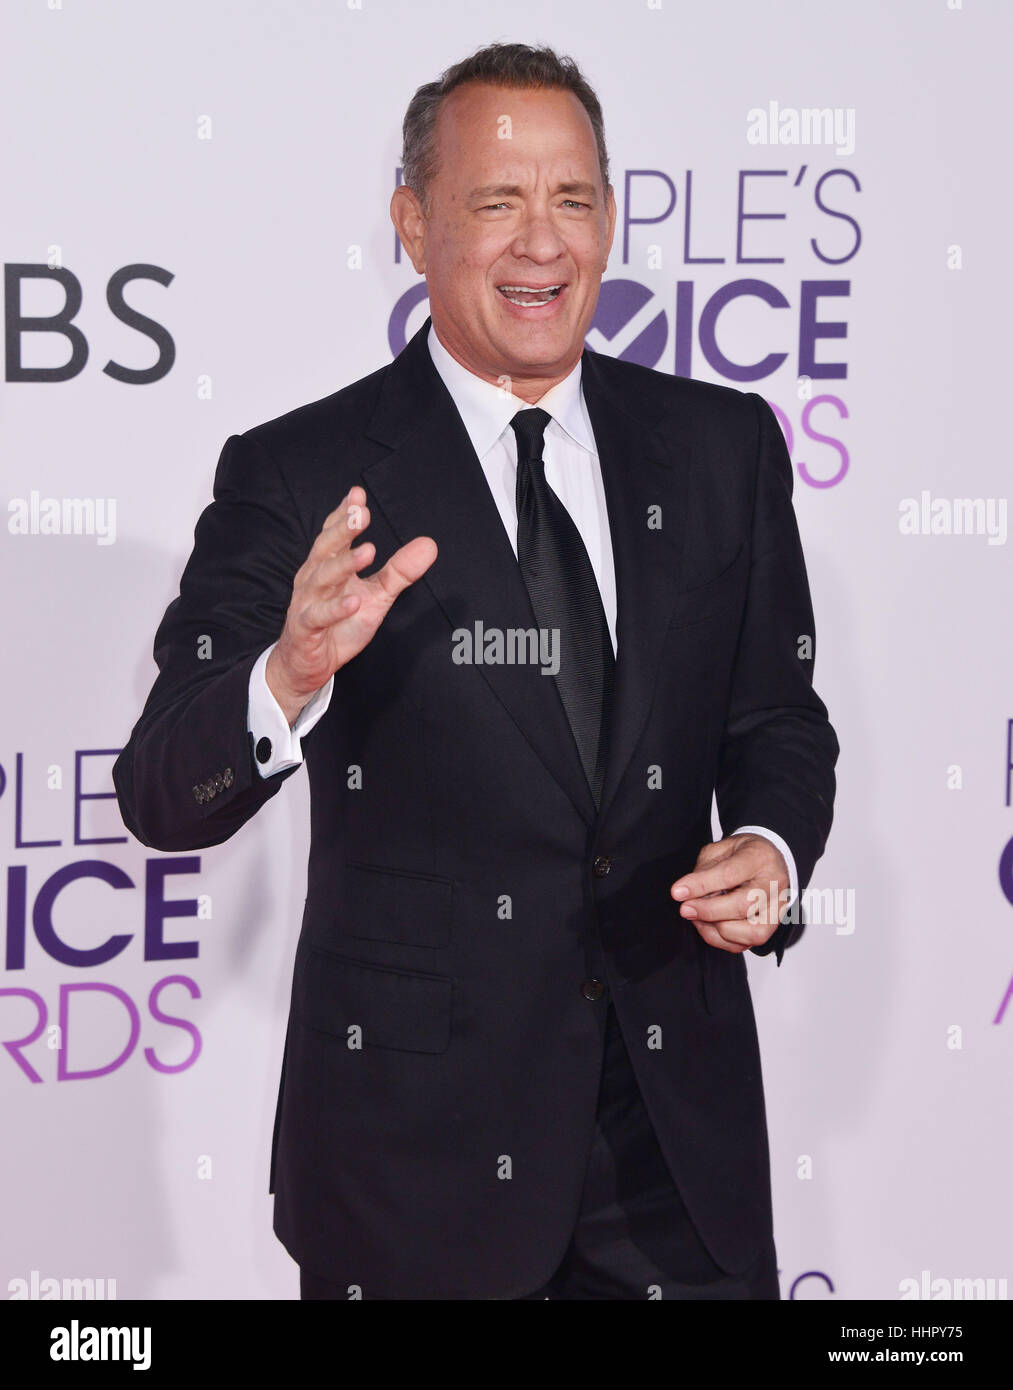 Tom Hanks 210 arriving at the People's Choice Awards 2017 at the Microsoft Theatre in Los Angeles. January 18, - Stock Image